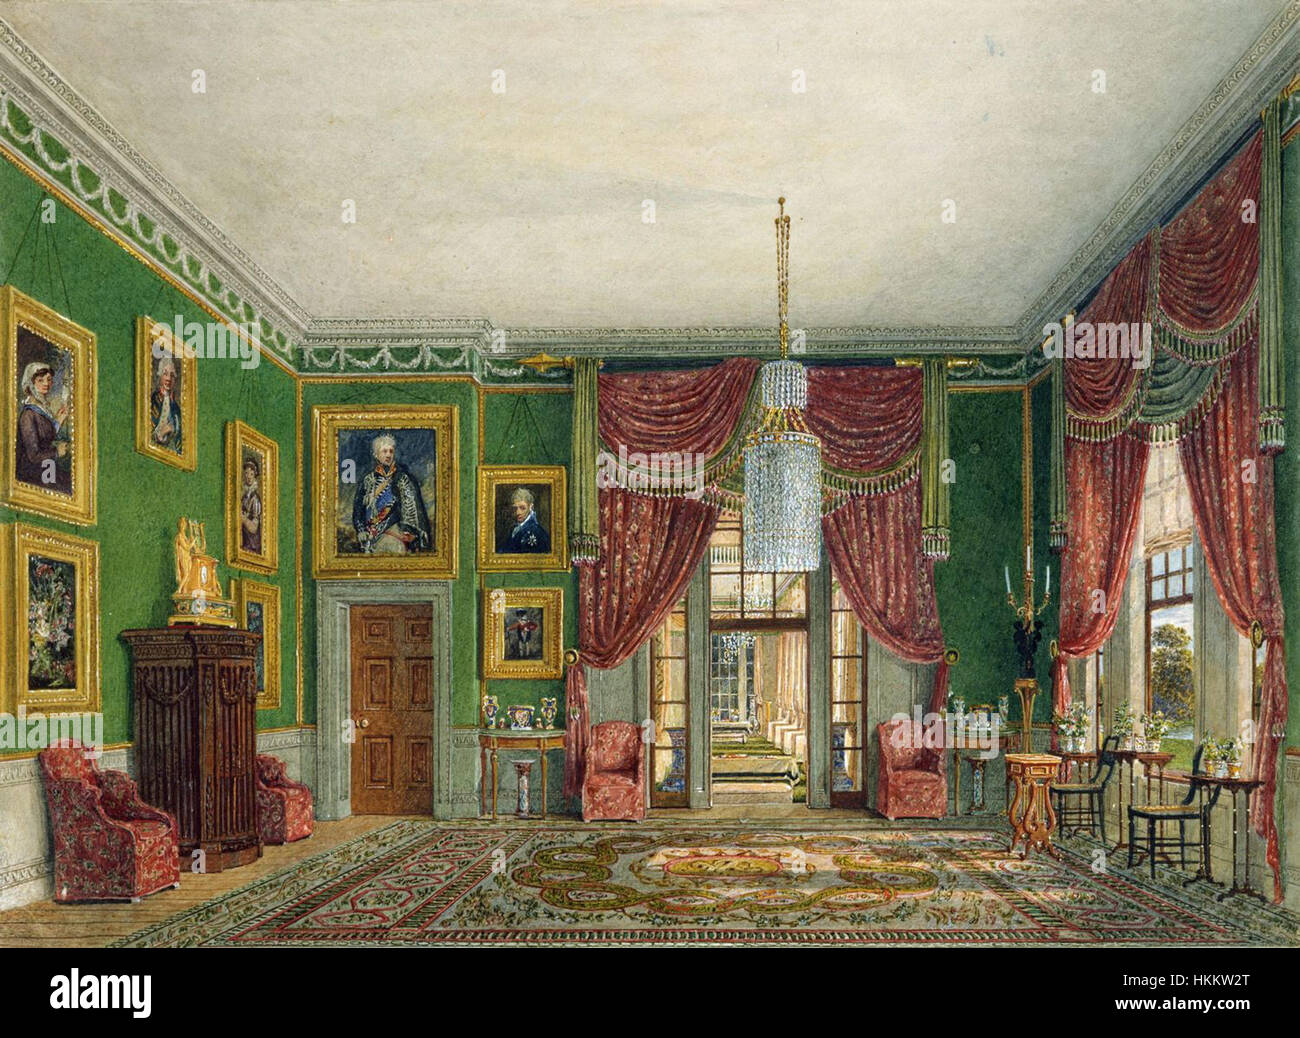 Frogmore House, Green Pavilion, by Charles Wild, 1817 - royal coll 922121 257043 ORI 0 0 Stock Photo